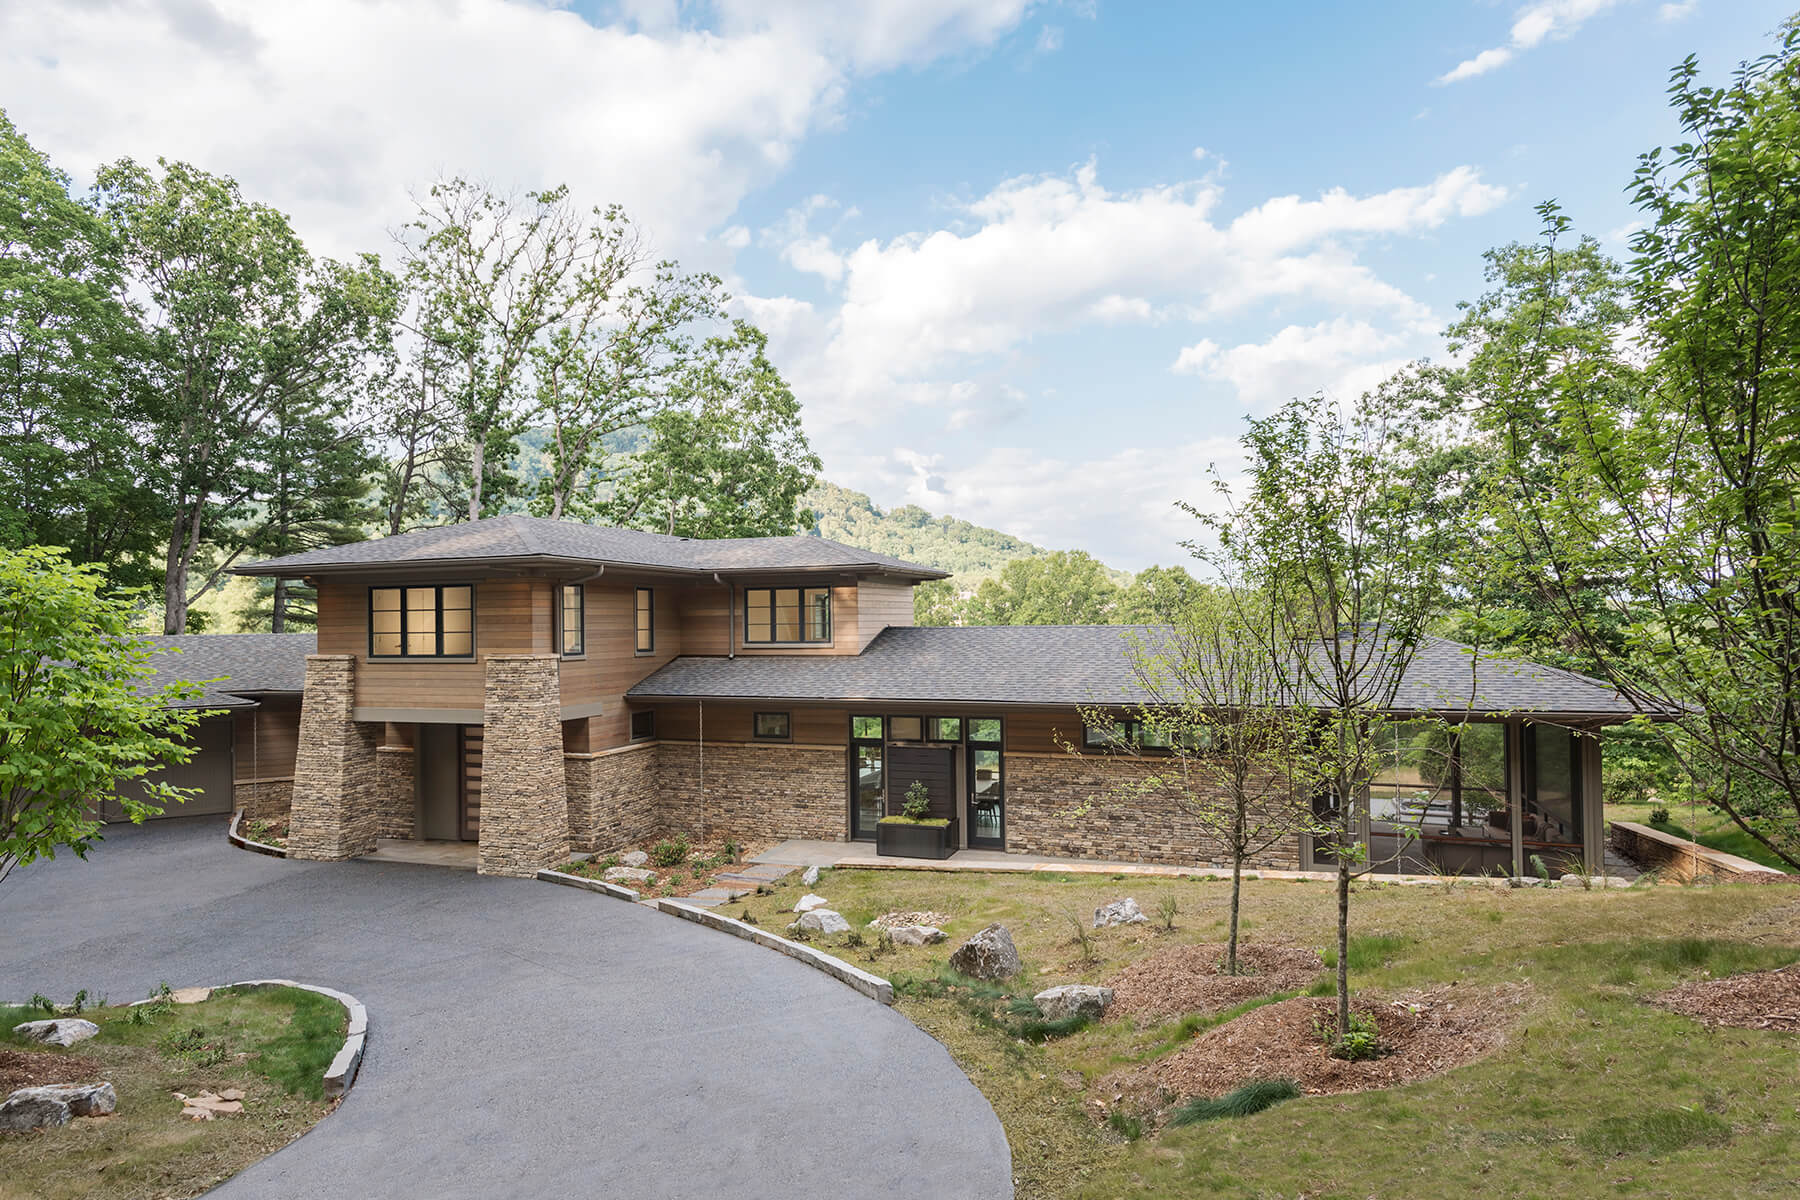 The Cliffs Walnut Cove high end home architectural design project